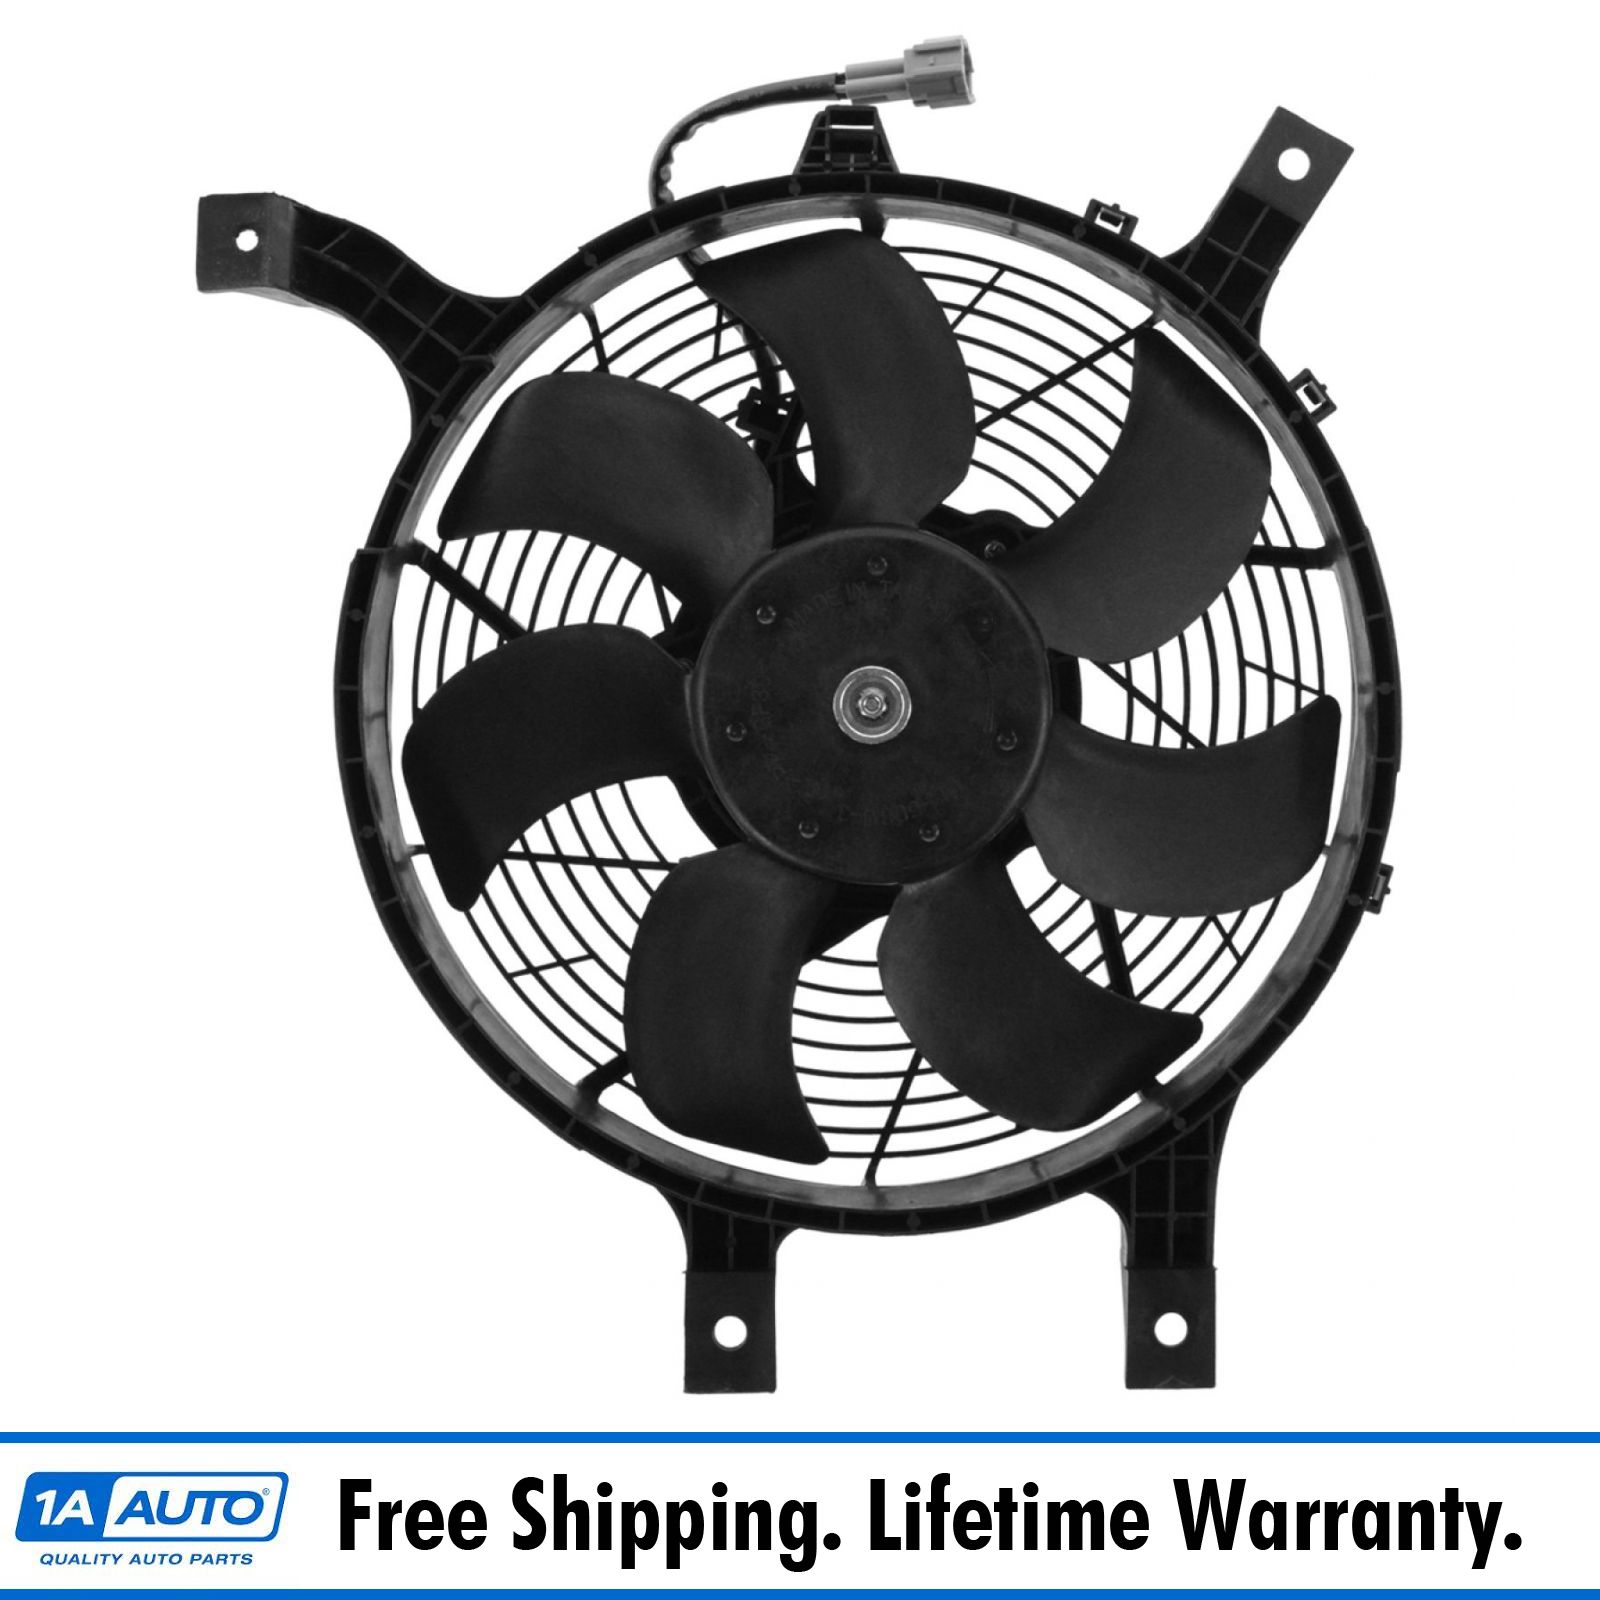 Radiator Cooling Fan Blades for Nissan Xterra Frontier V6 3.3L